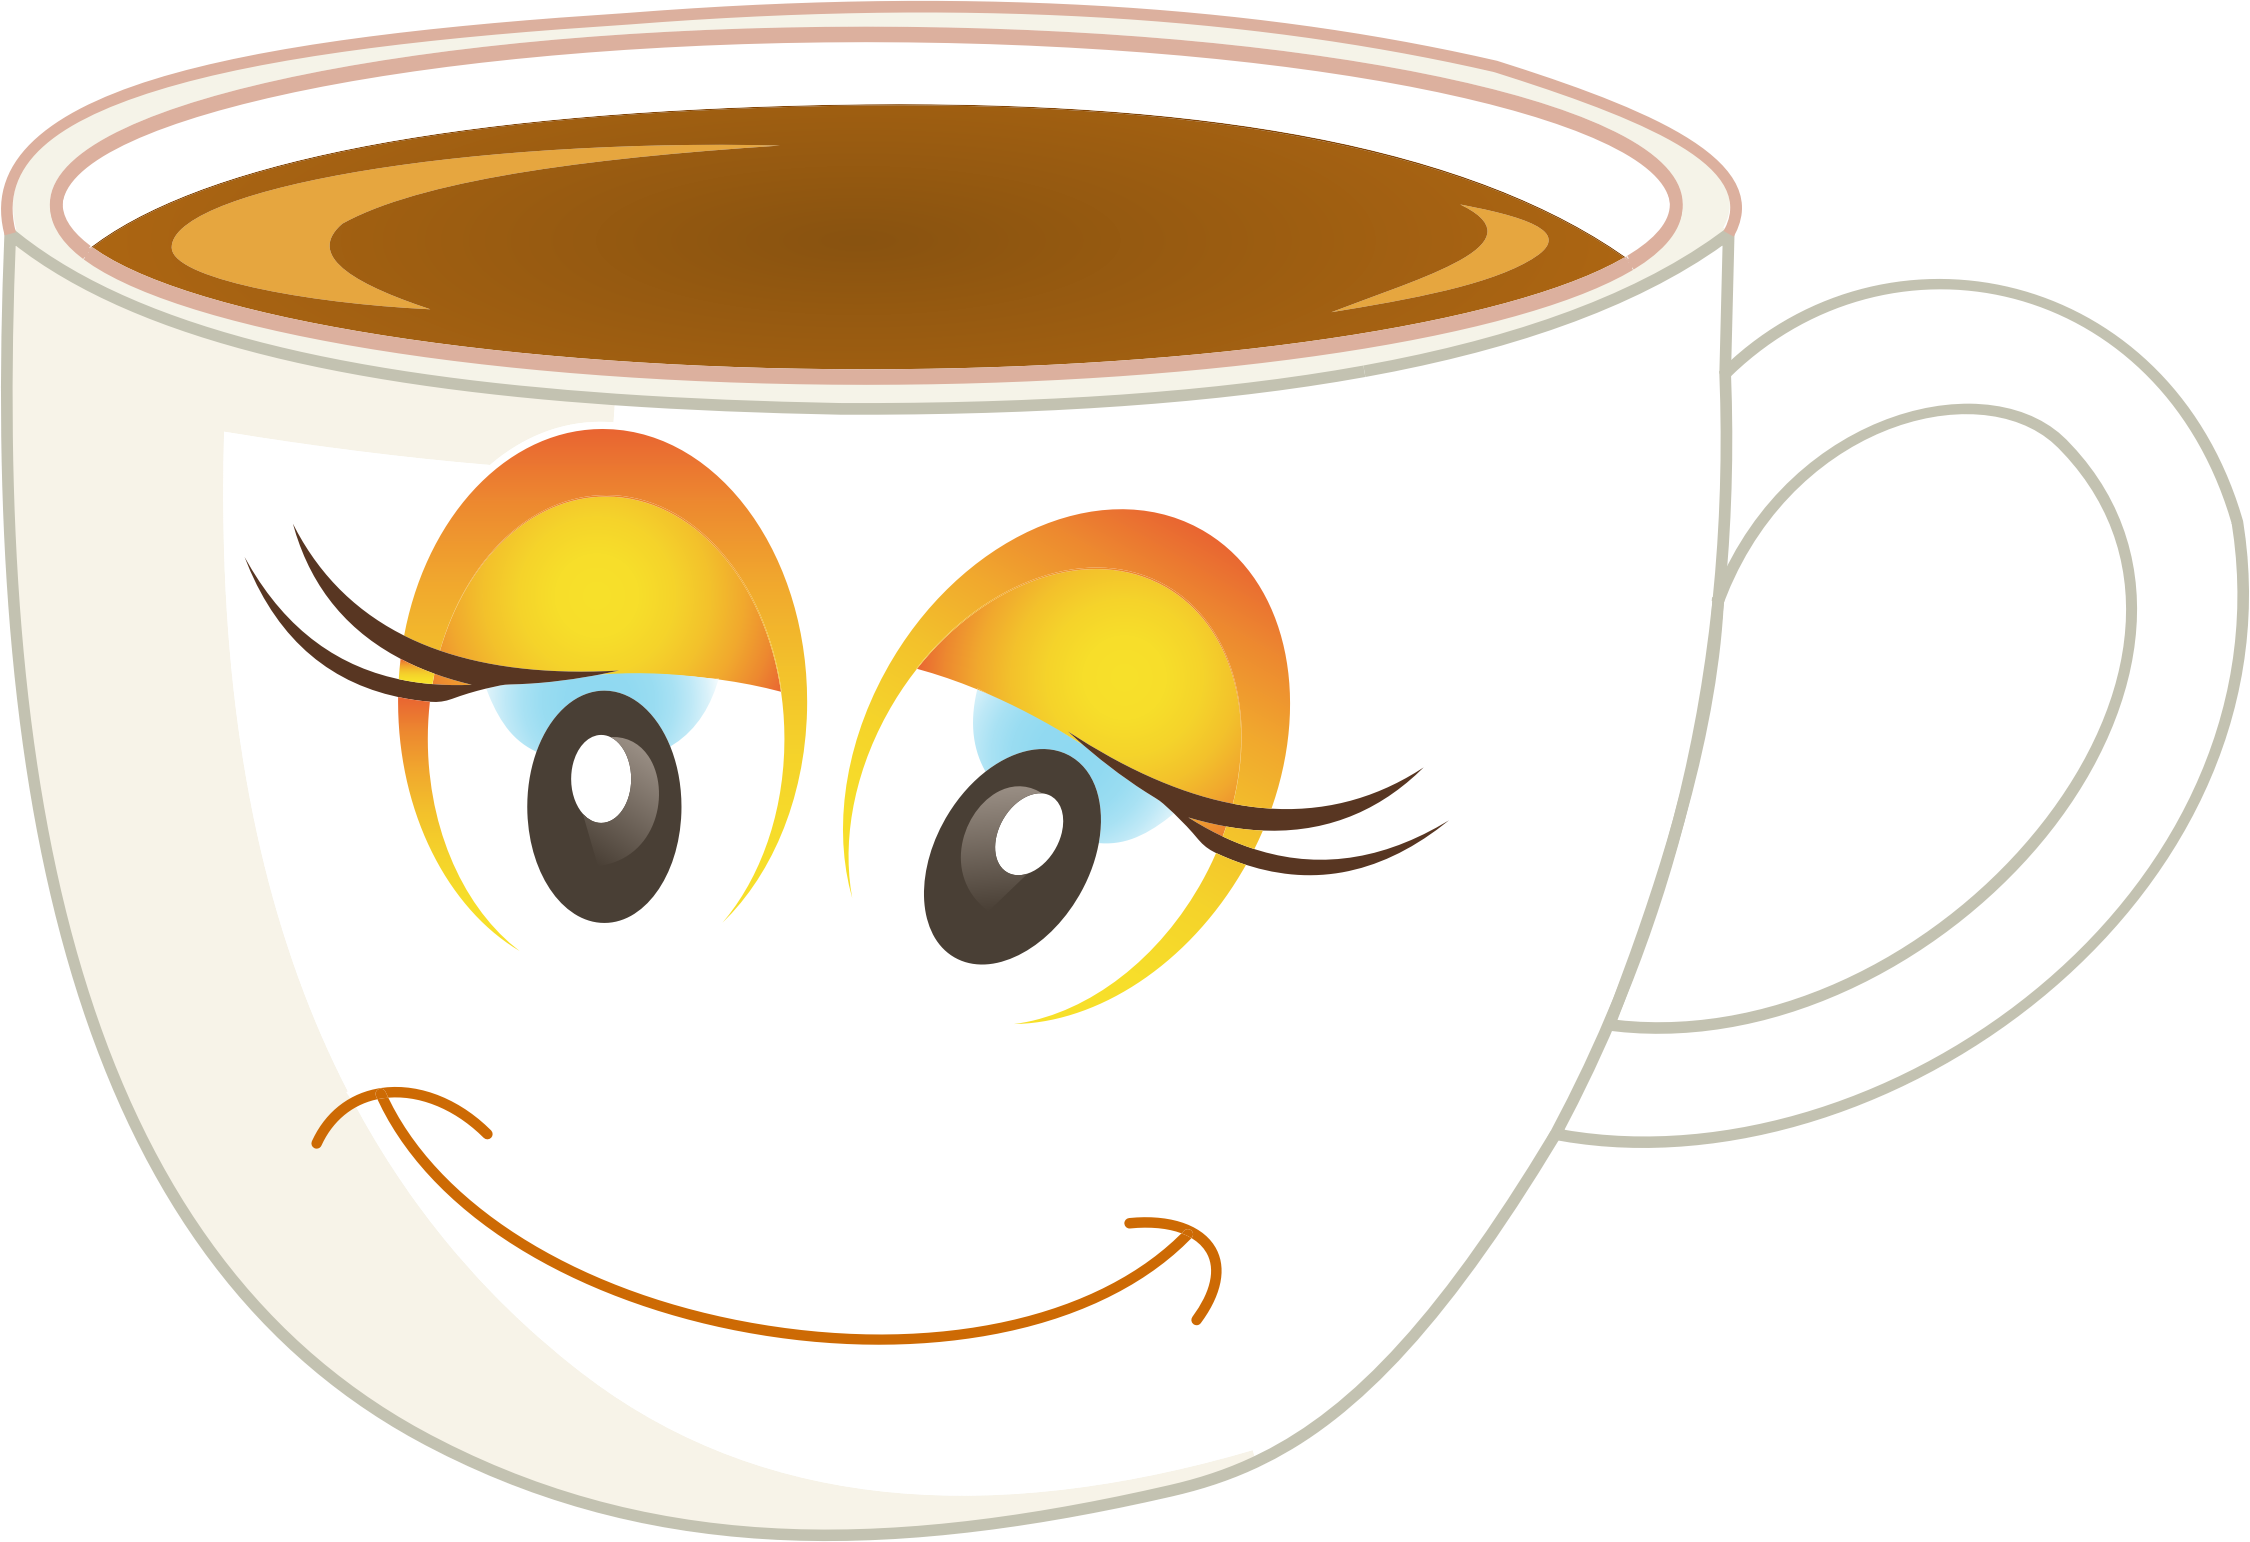 Anthropomorphic Happy Female Cup Of Coffee Or Tea Redrawn by GDJ